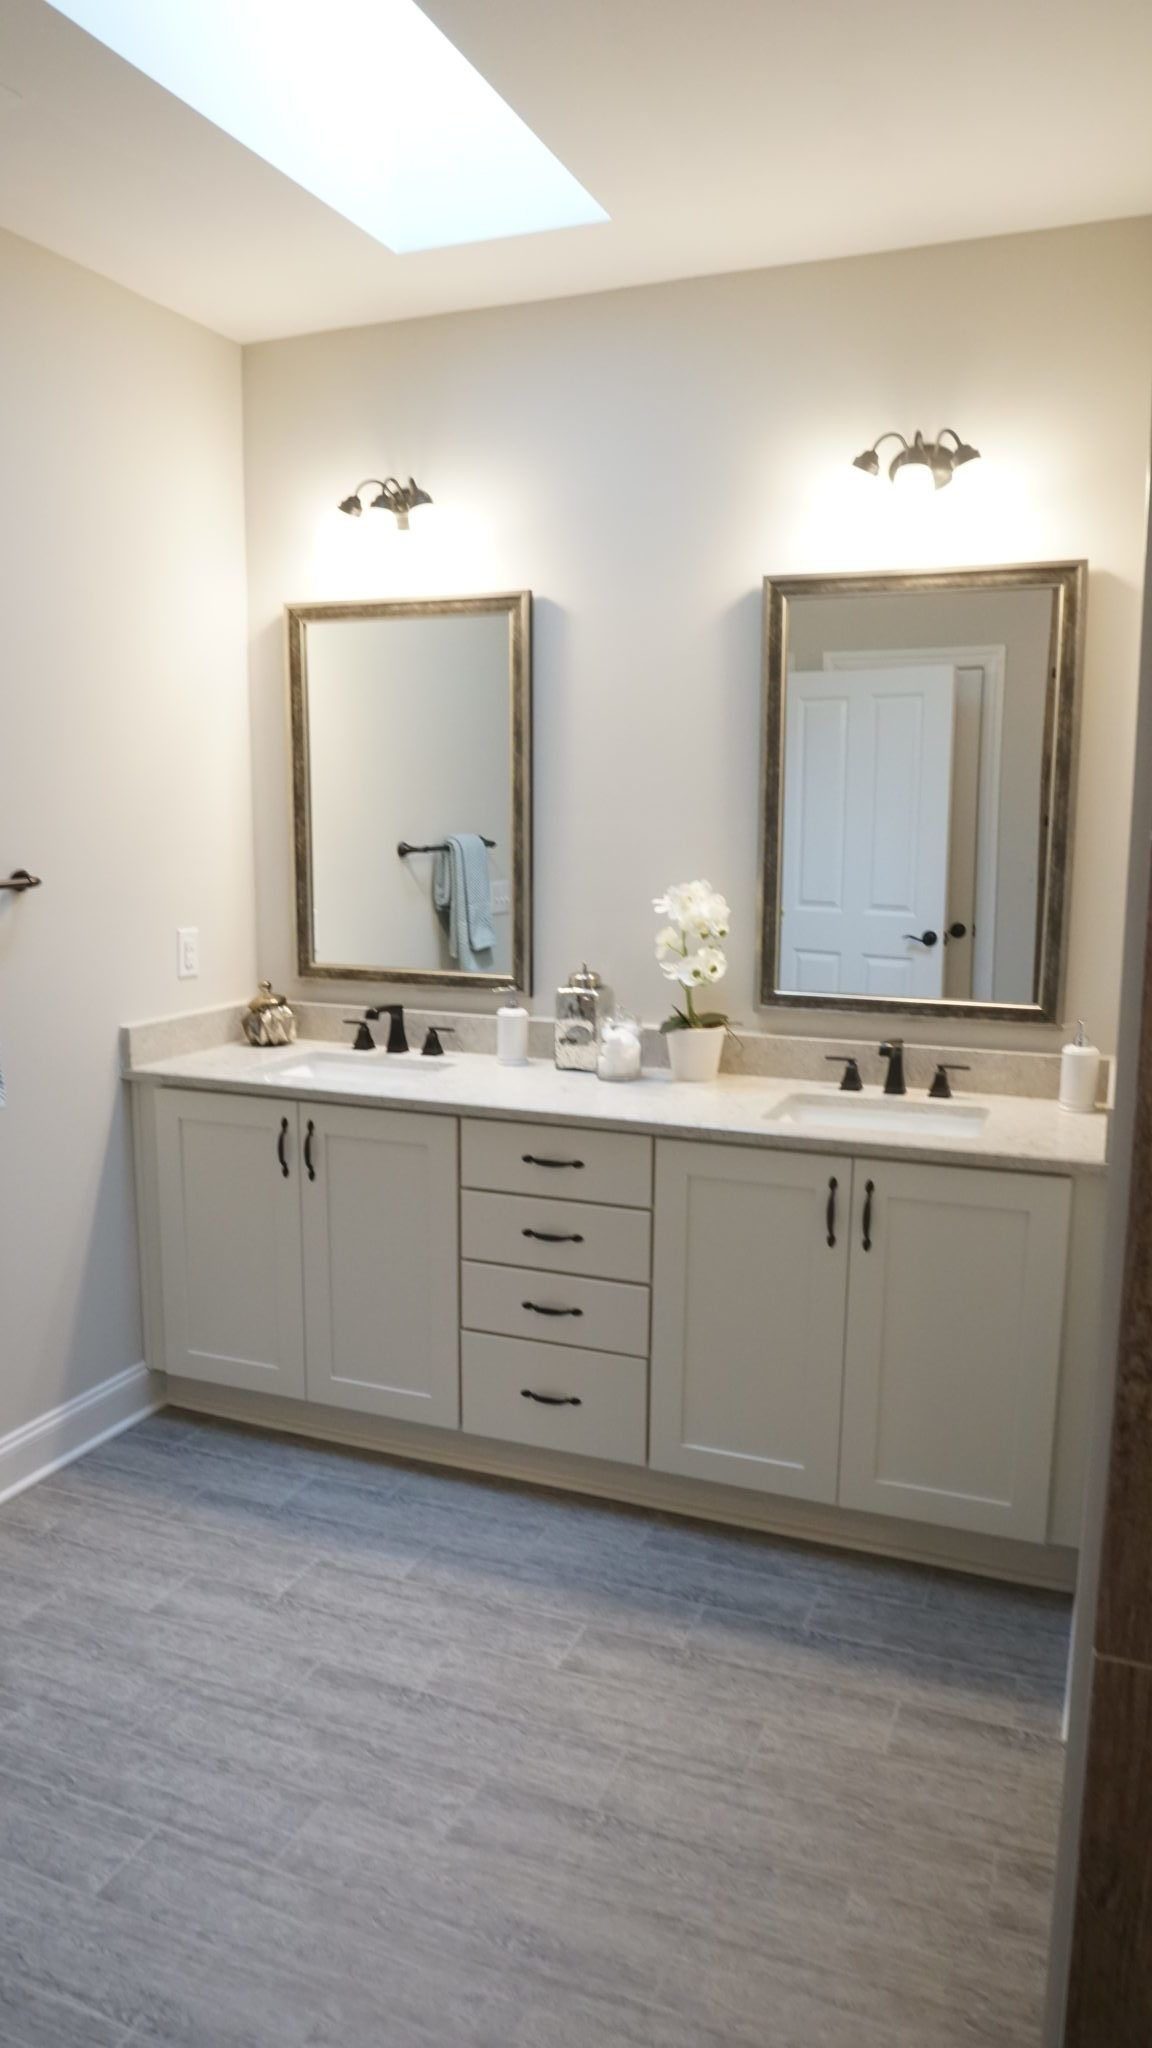 Bathroom featured in the Promenade III - Charlotte Corporate By Epcon Communities in Charlotte, NC